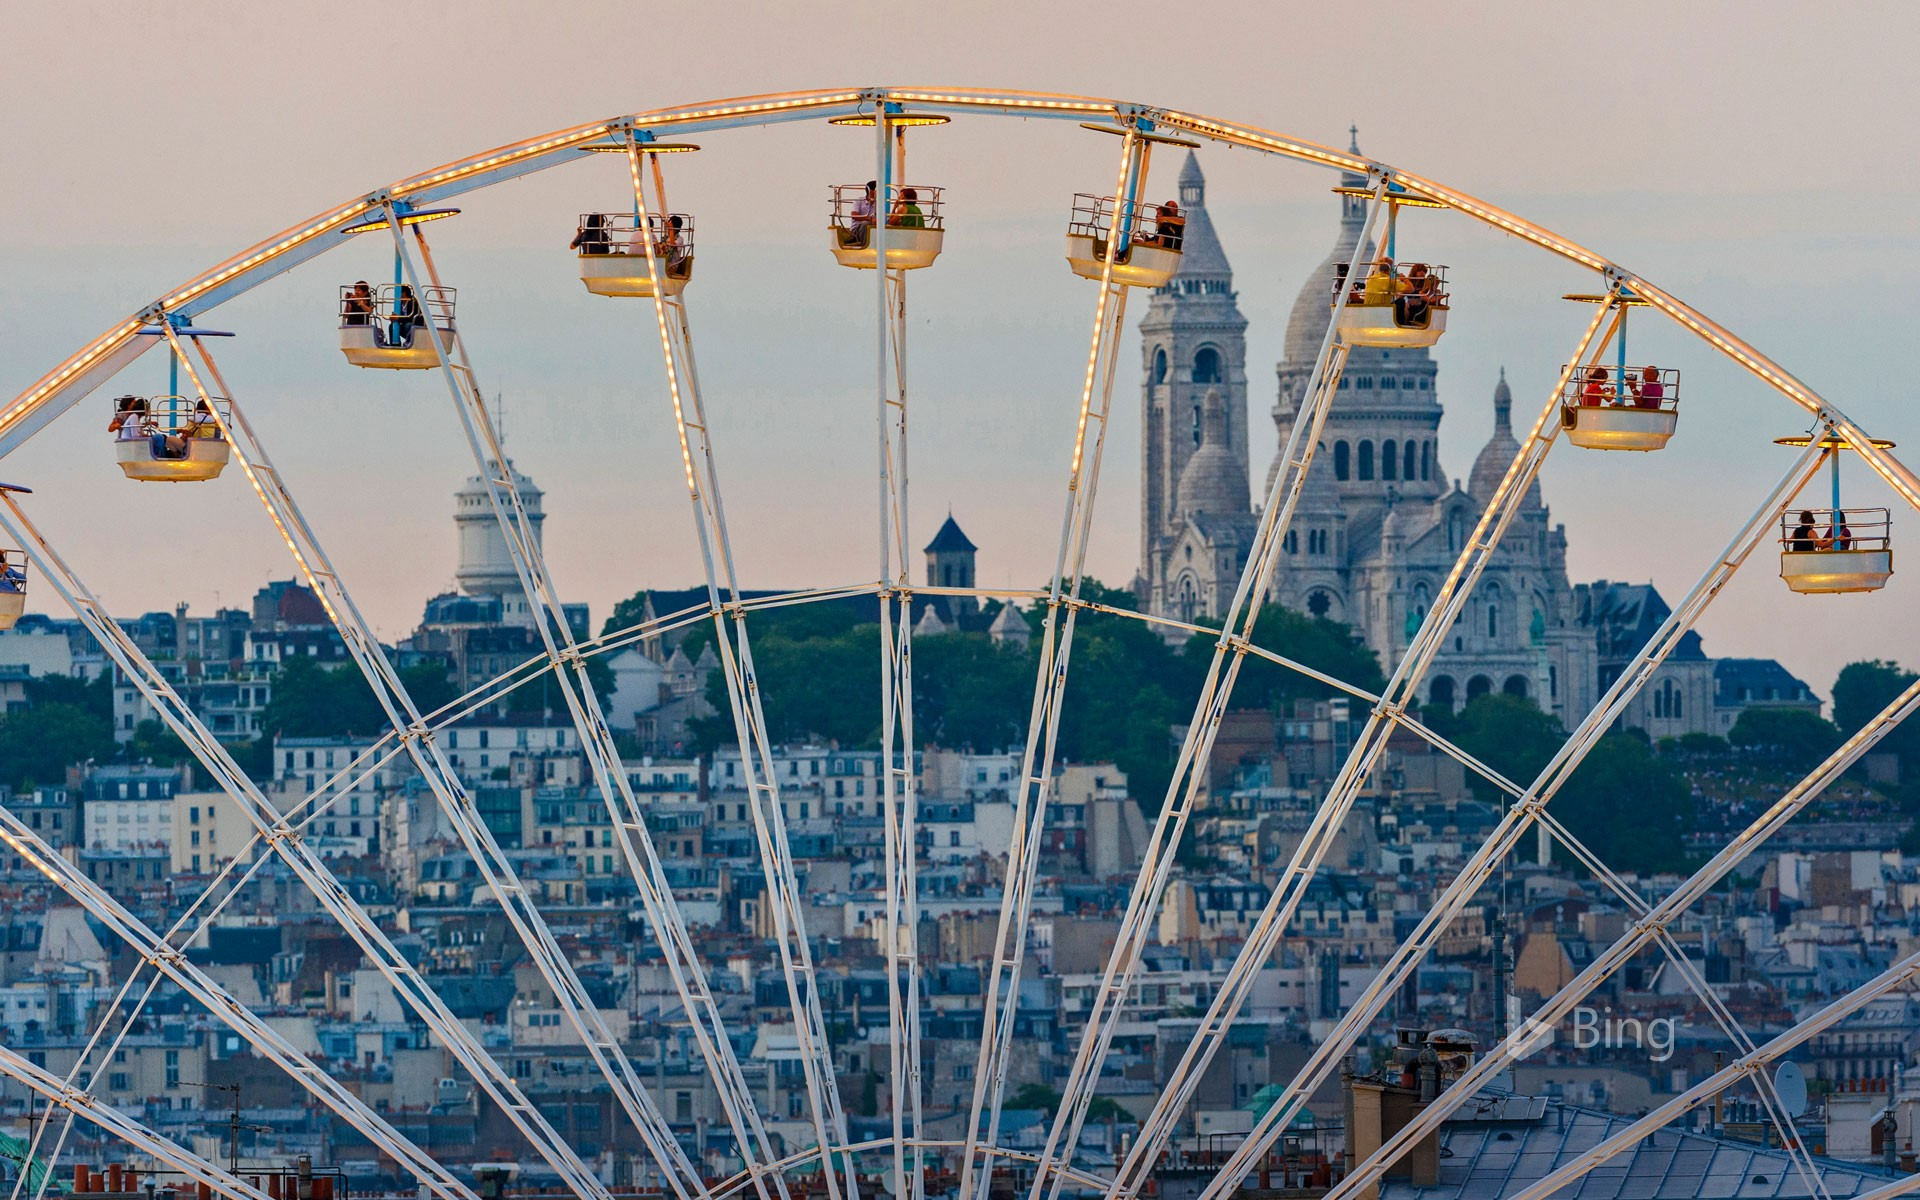 Ferris wheel in the Tuileries Garden in Paris, France (© Tardy Herv/Getty Images)